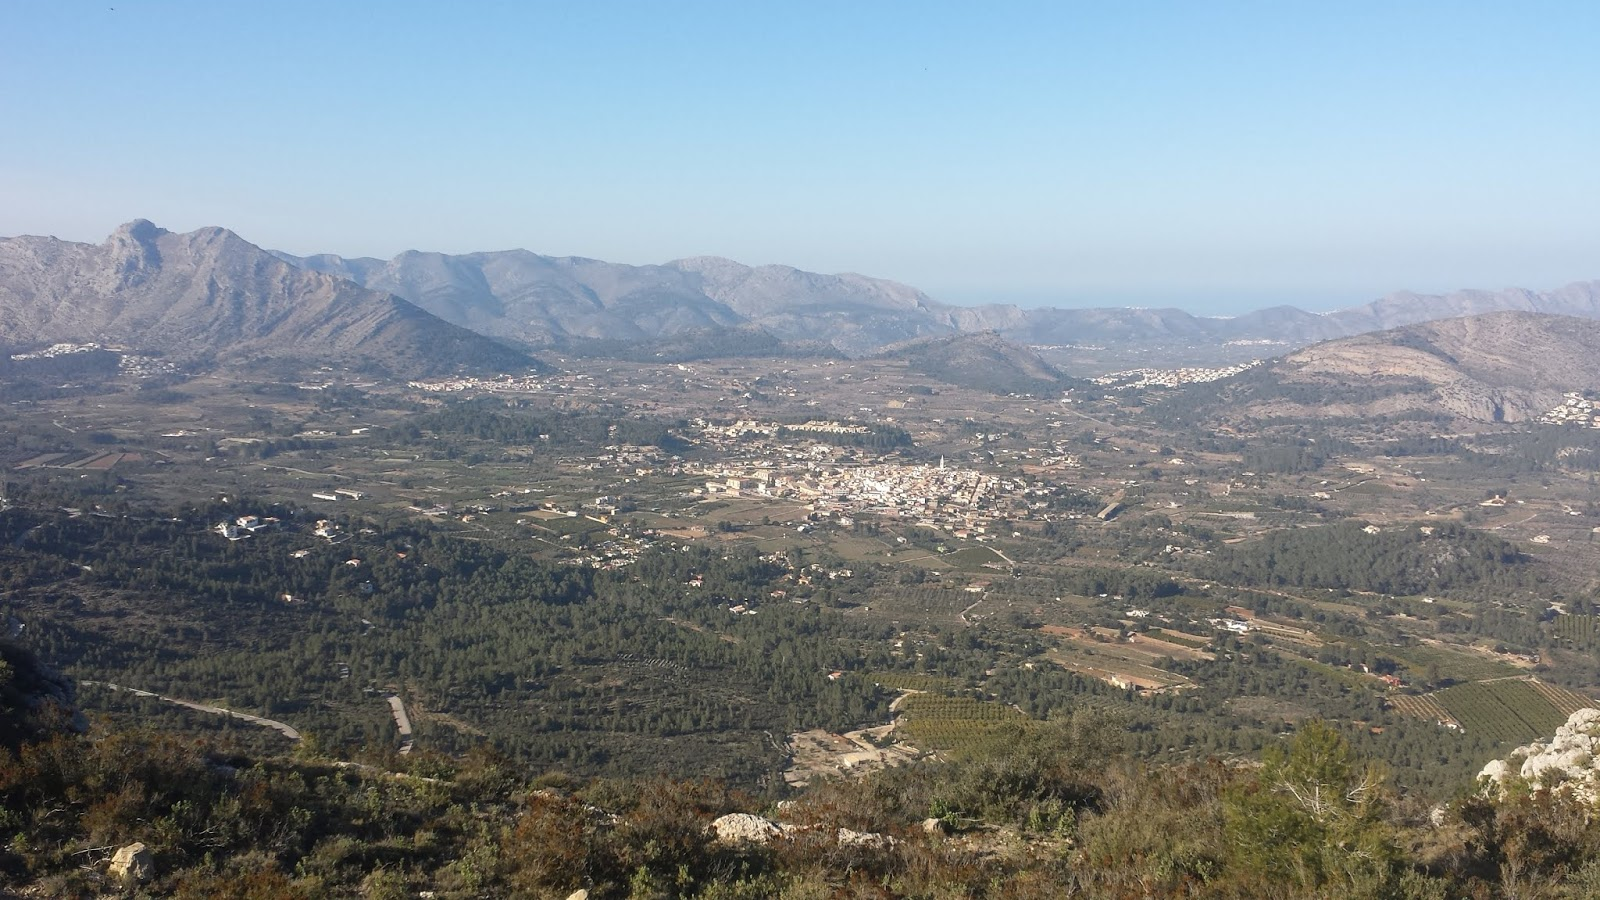 The village of Parcent from Coll de Rates